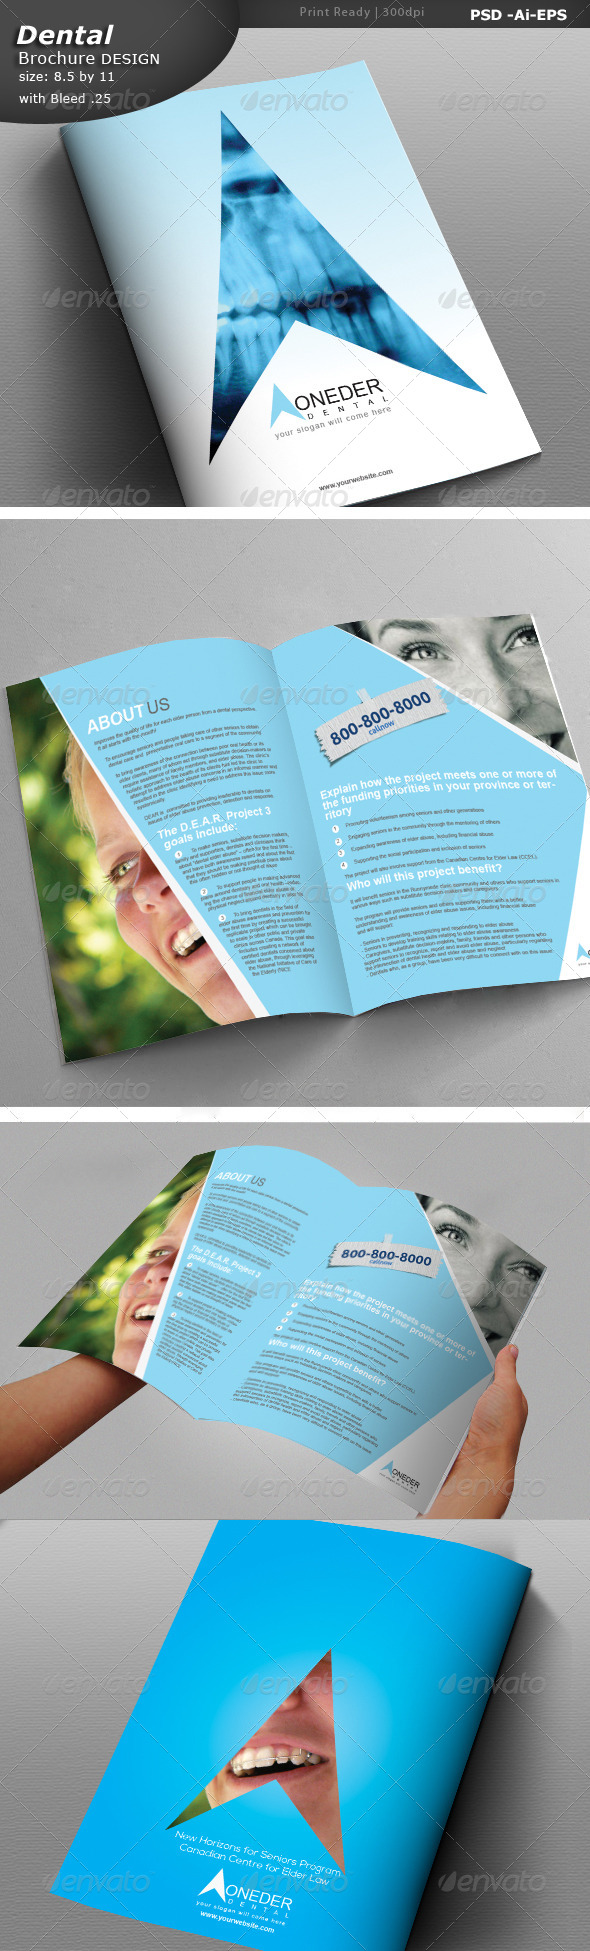 GraphicRiver Dentist Brochure Design 6928841